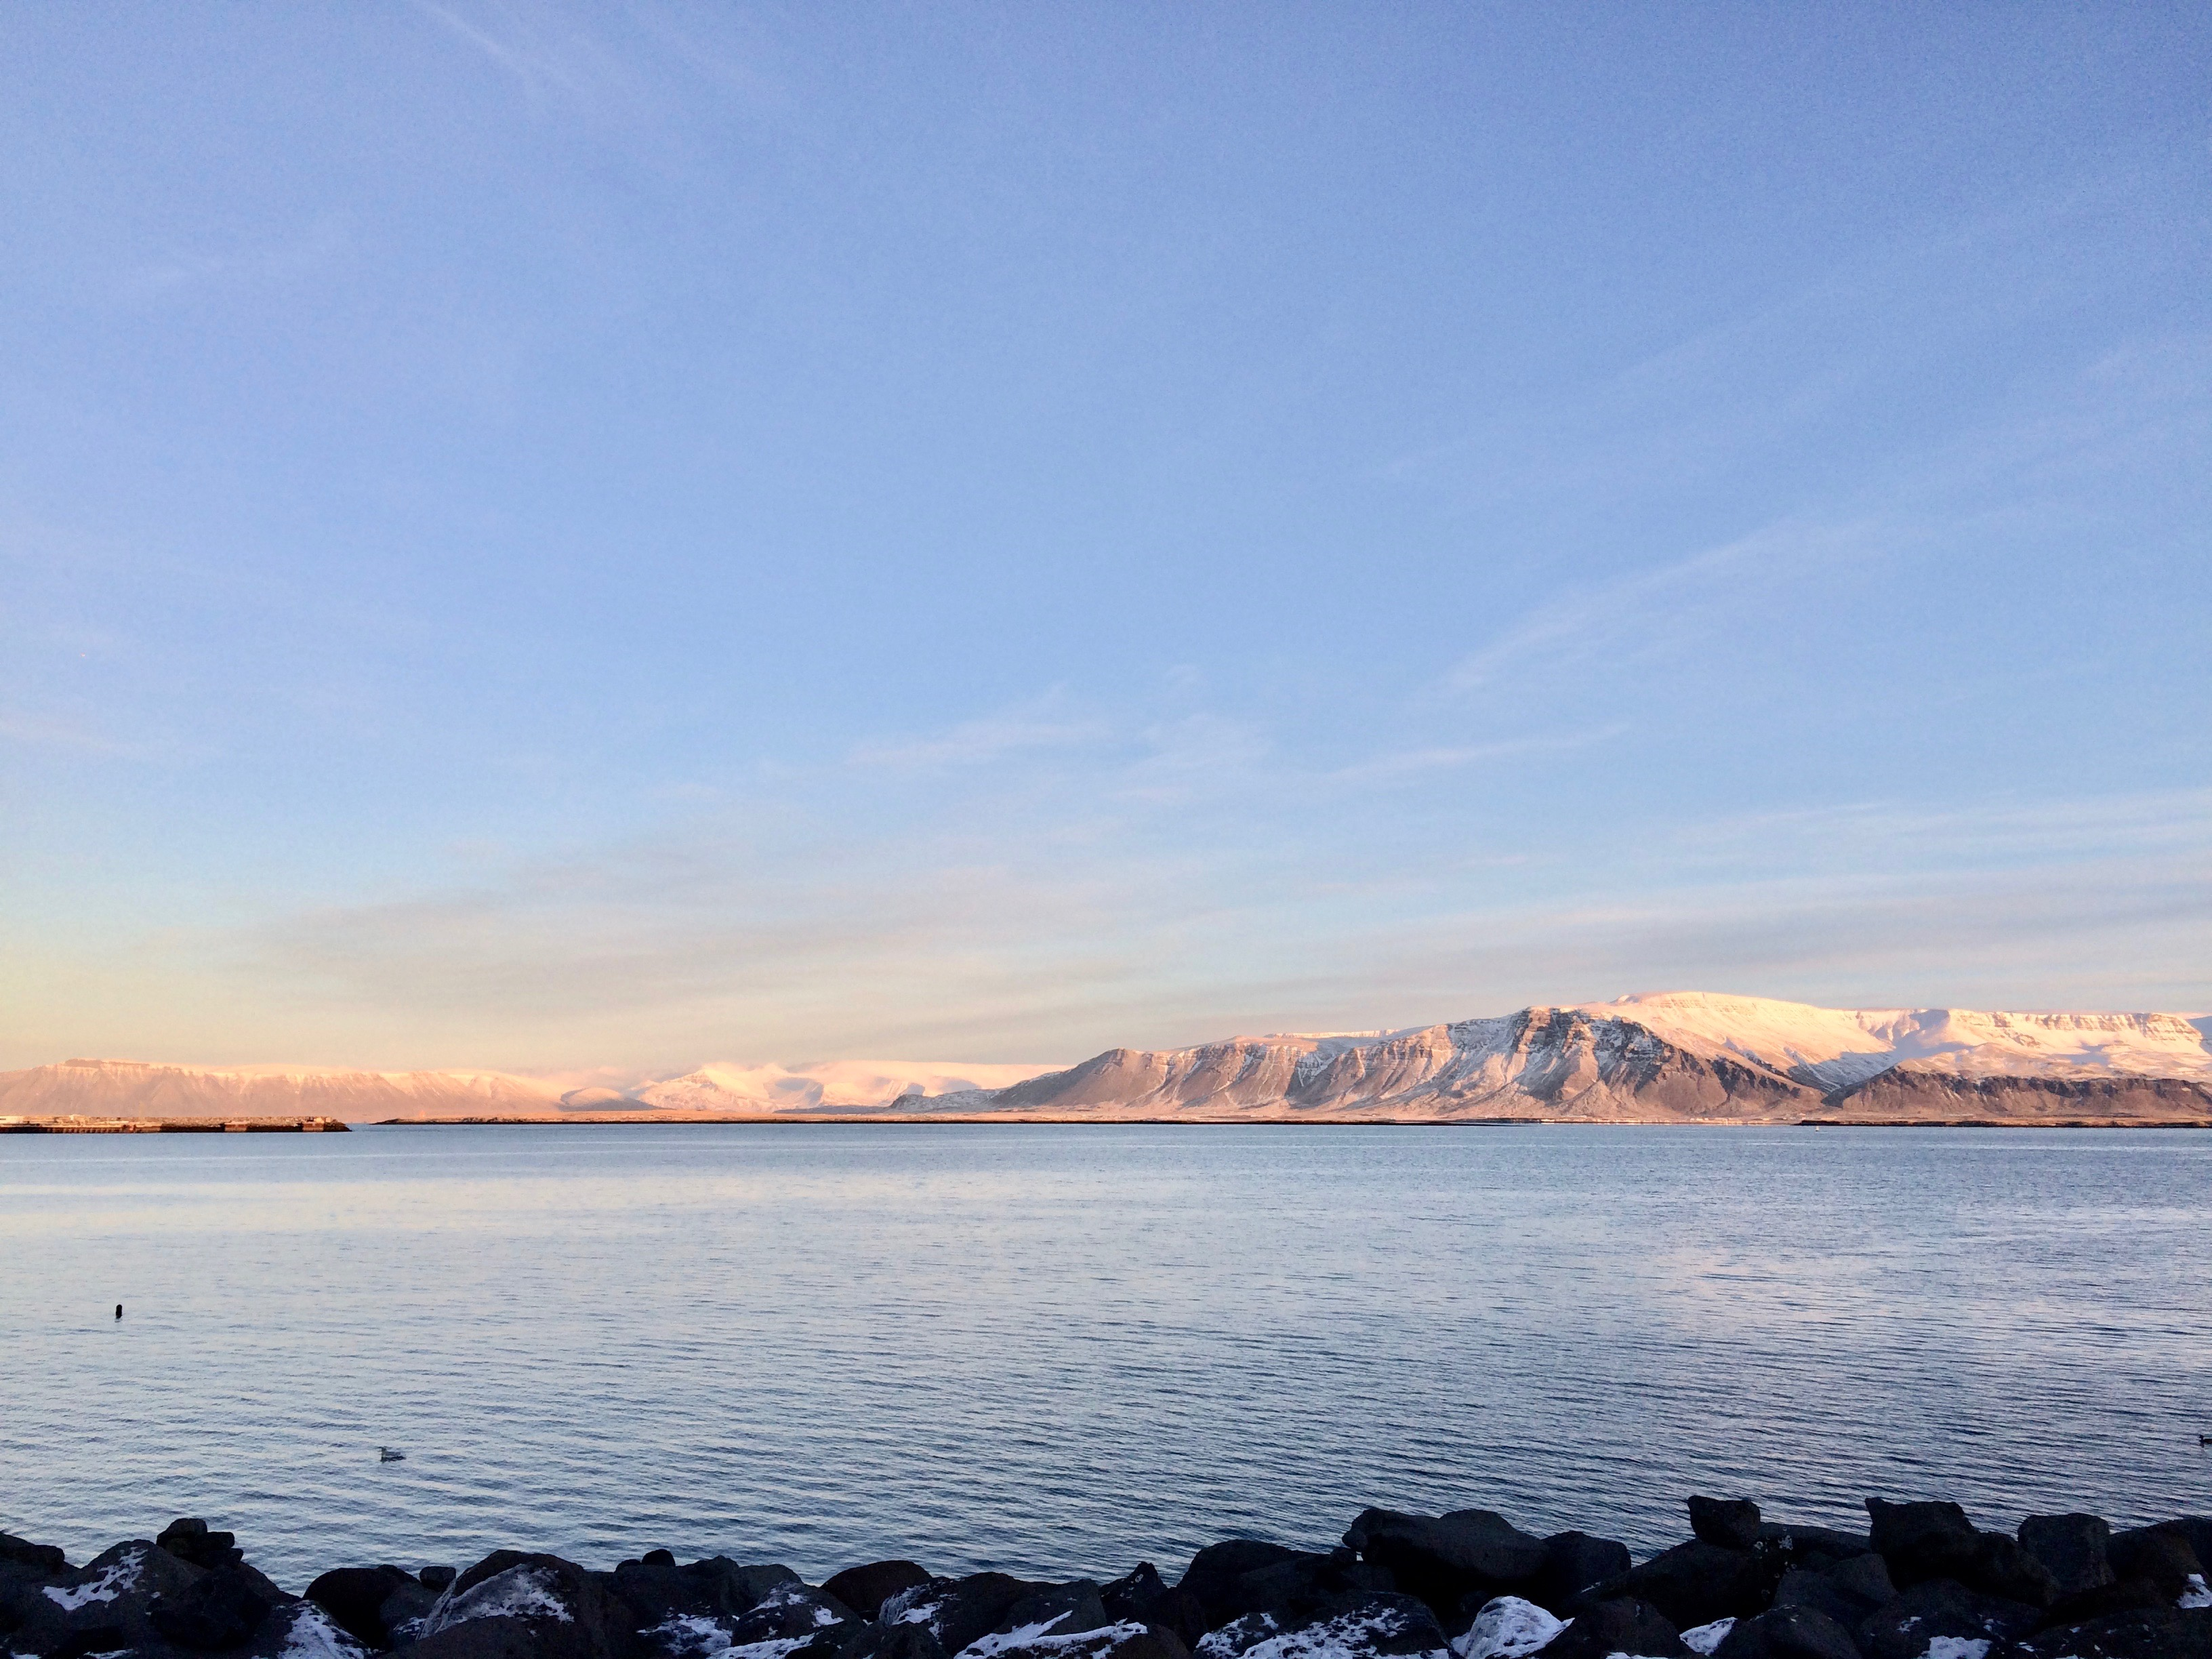 Landscape view from Reykjavik Harbour